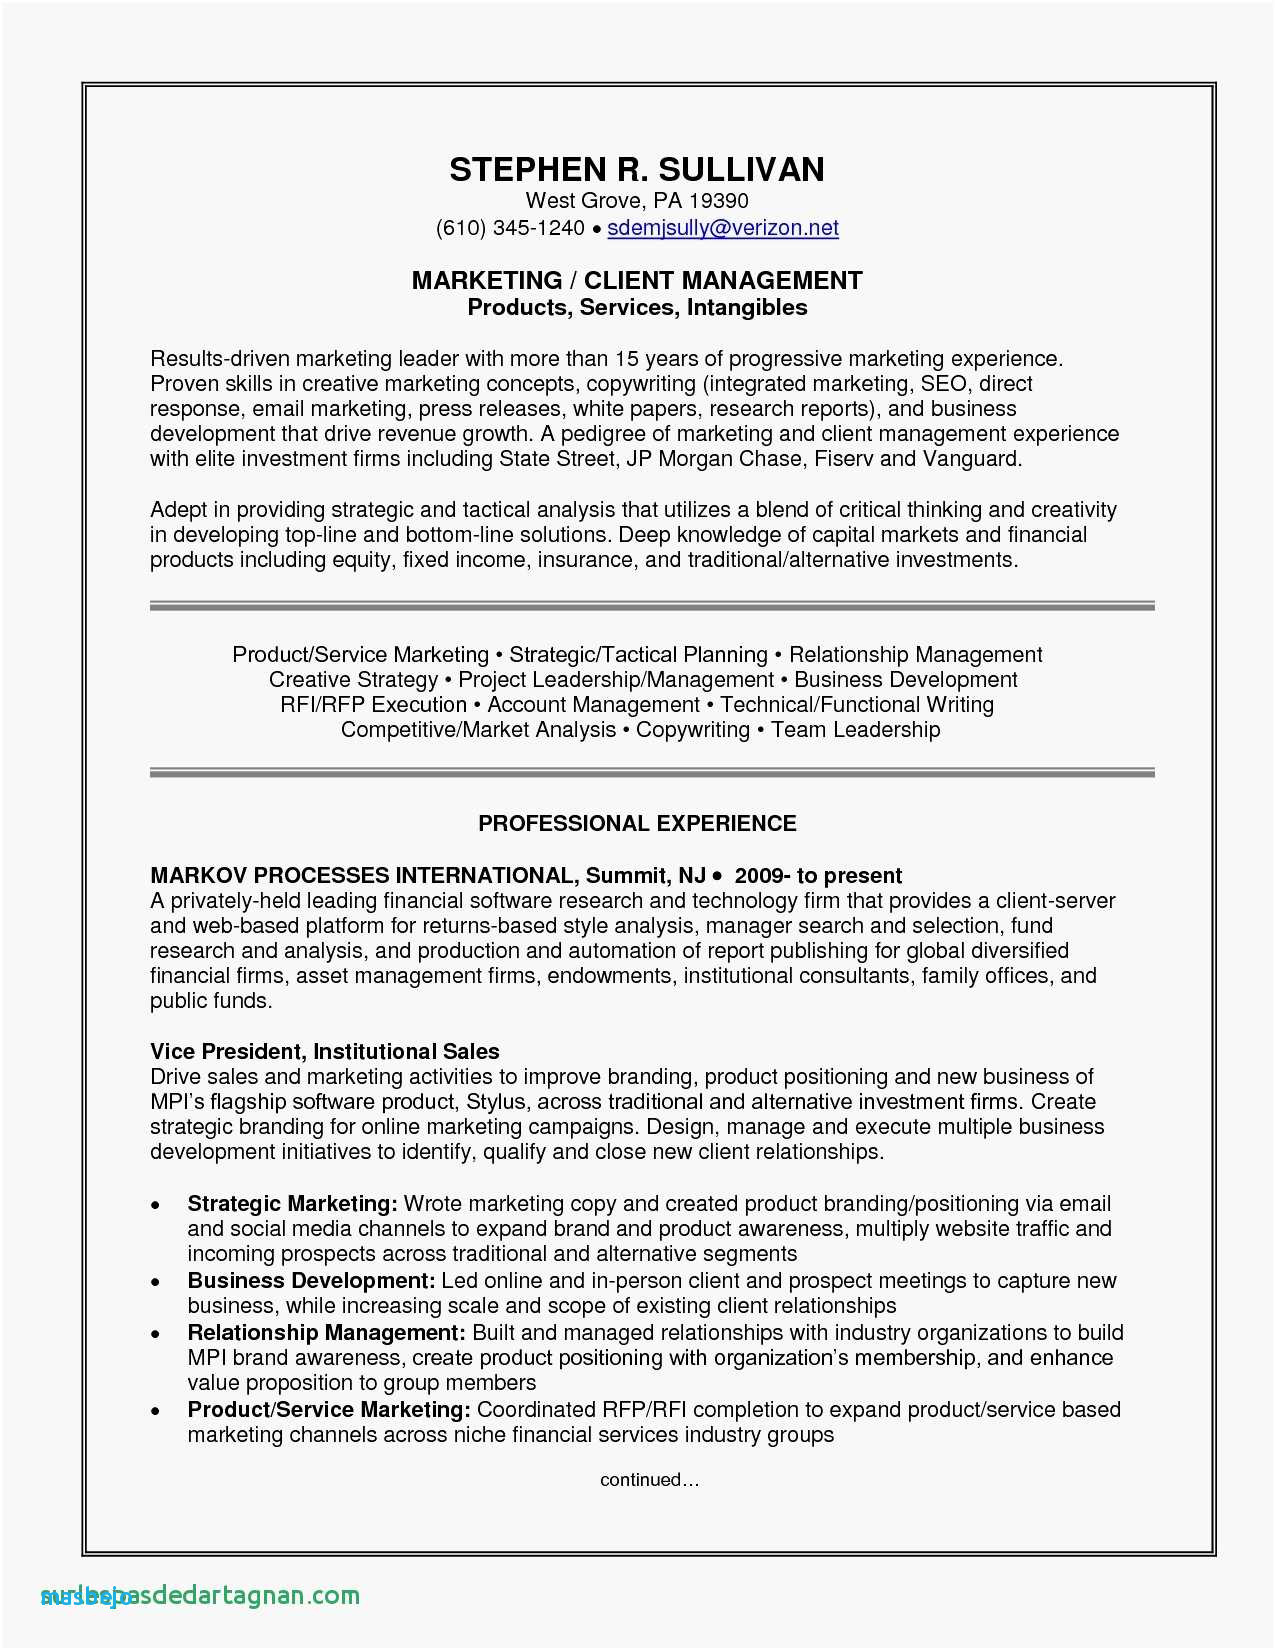 Search for Resumes - Indeed Resume Login Resume